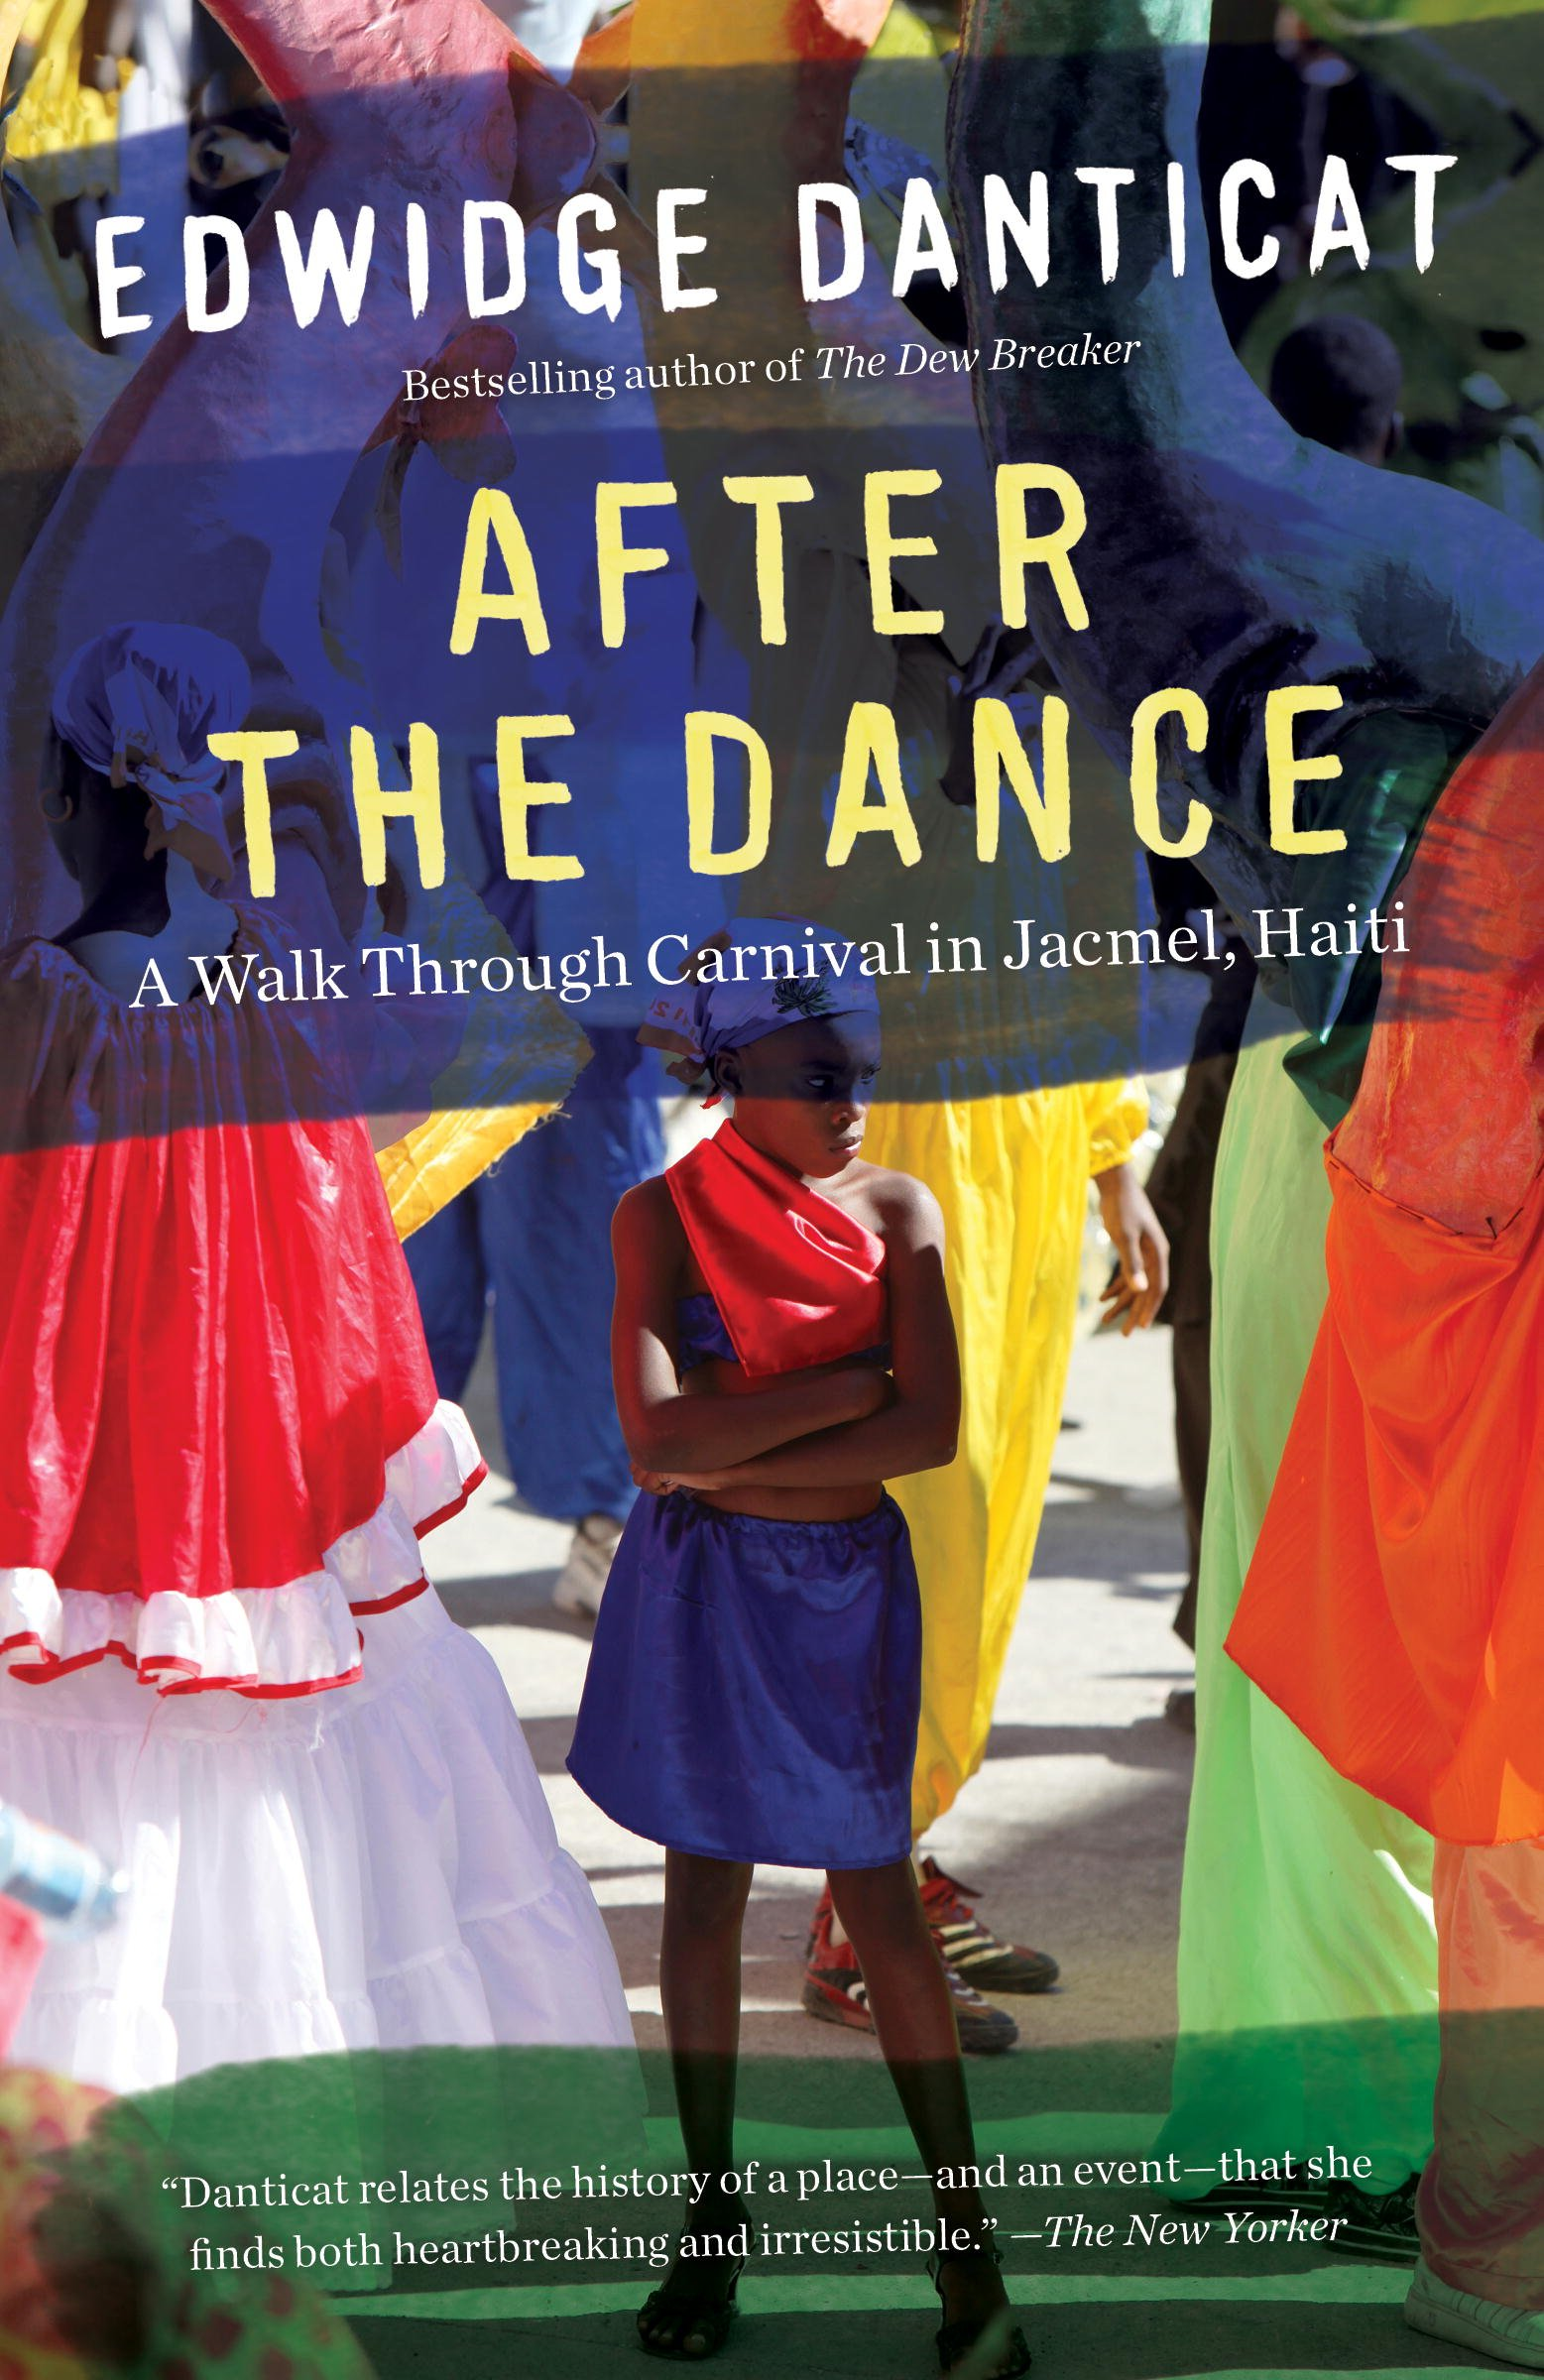 after-the-dance-a-walk-through-carnival-in-jacmel-haiti-updated-vintage-departures_6271476.jpeg